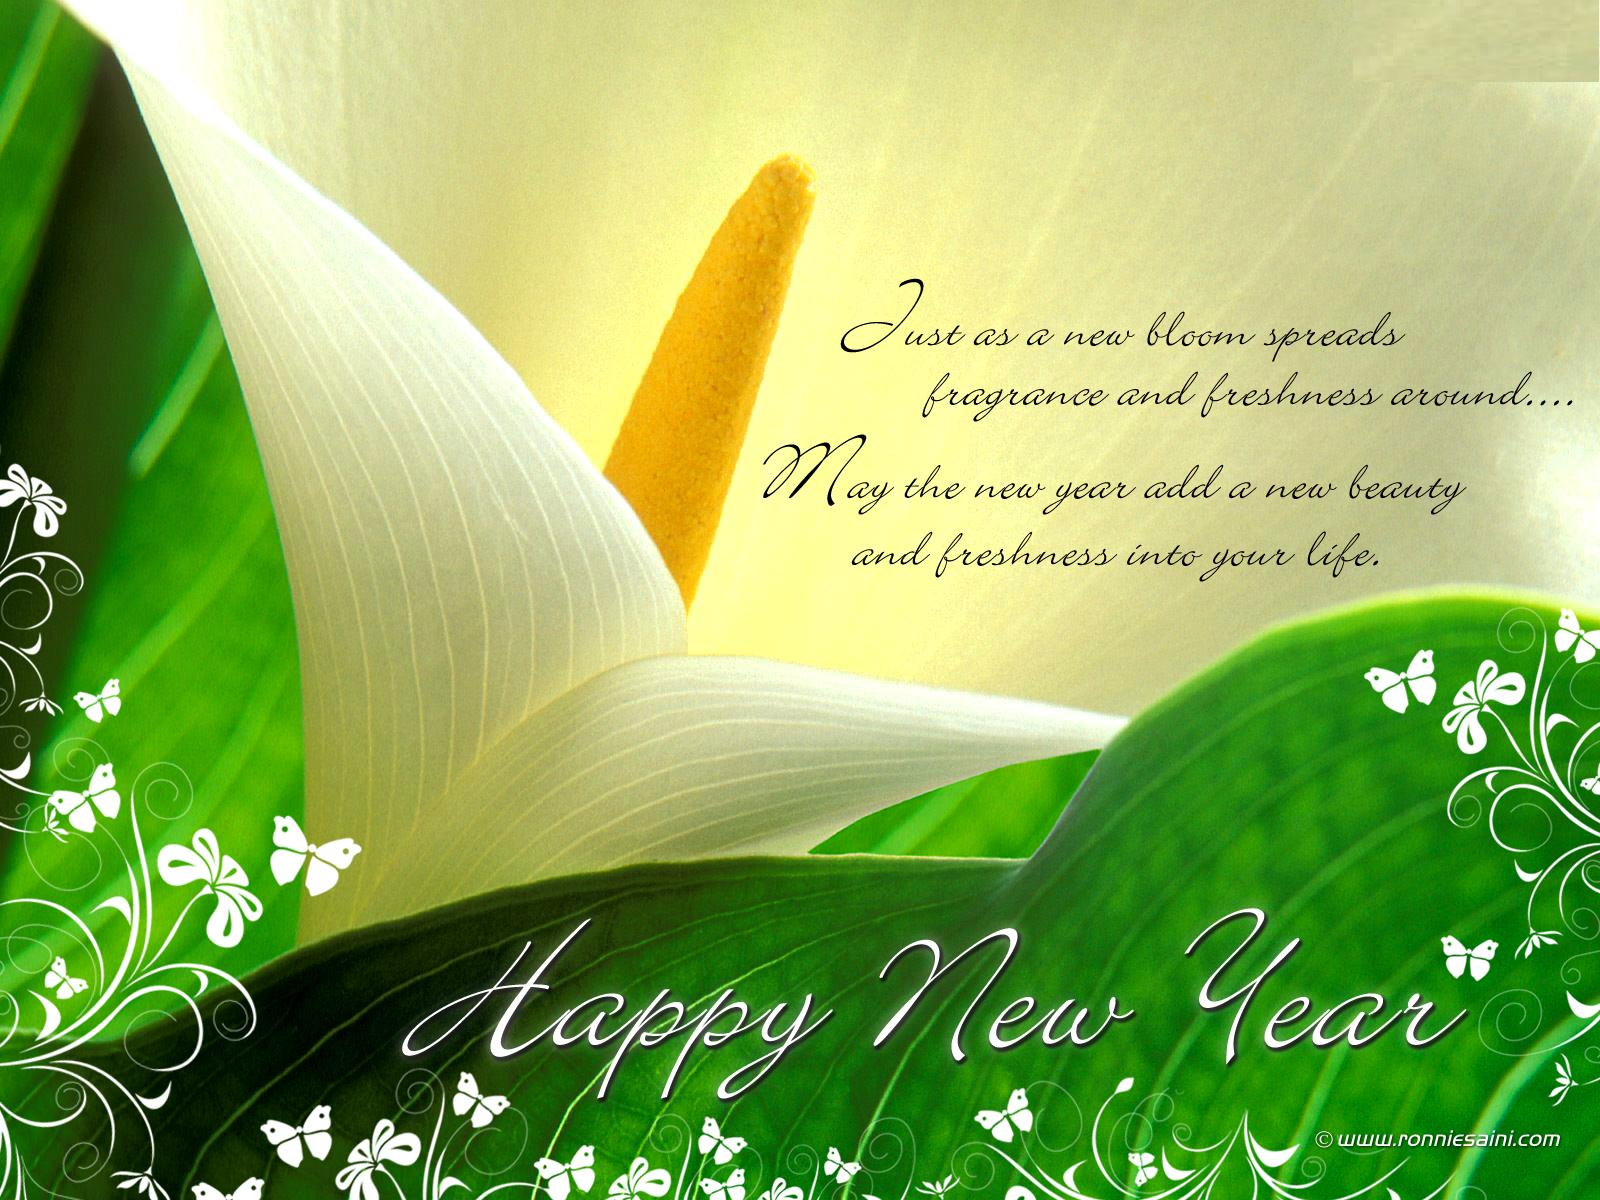 Happy new year 2014 wallpapers free new year 2014 ecards greeting free new year 2014 ecards greeting cards online m4hsunfo